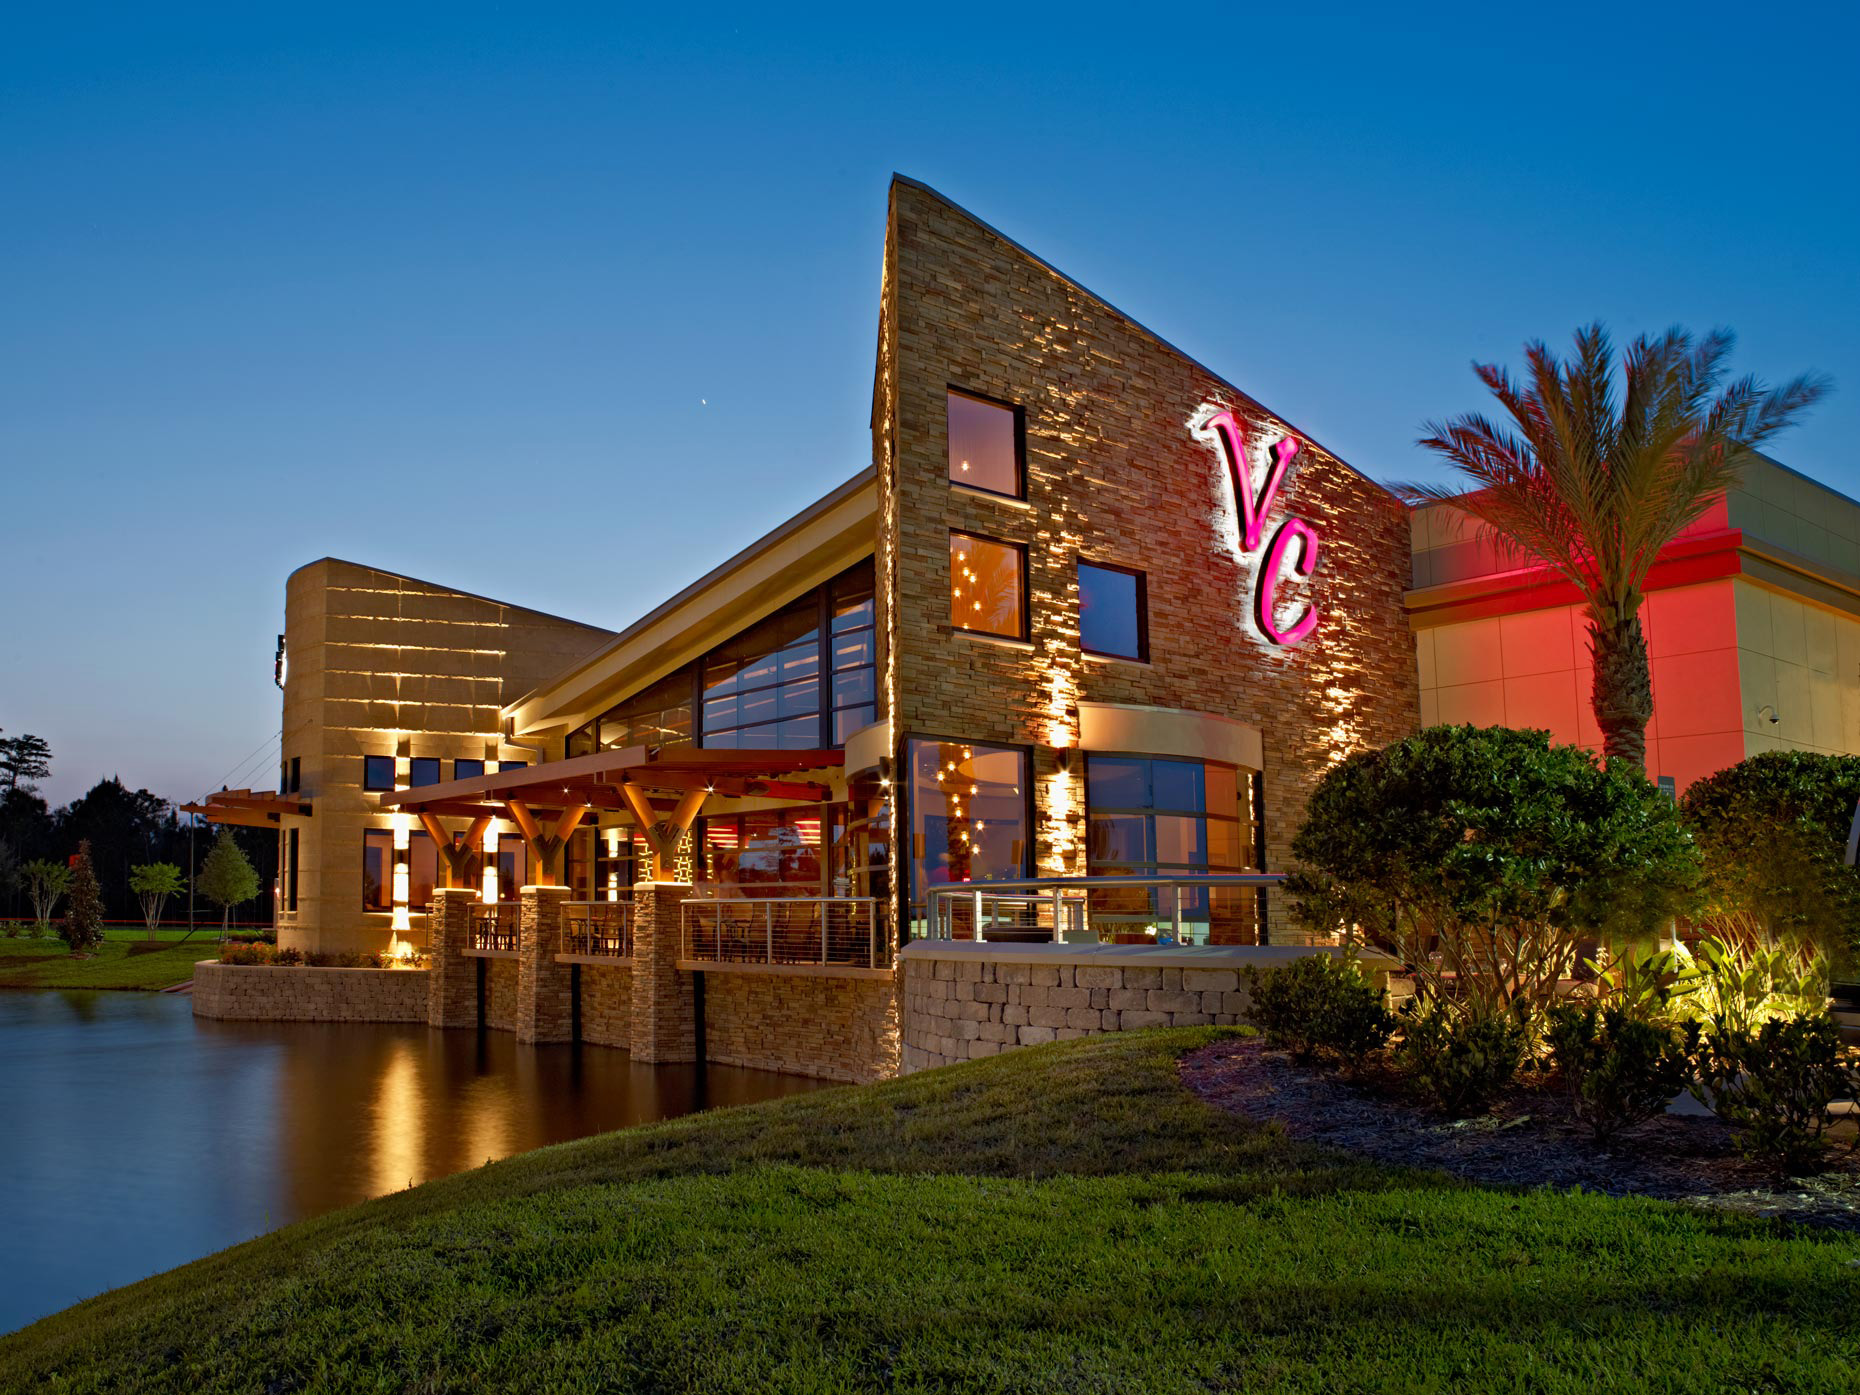 Restaurant Photography | Vince Carter Restaurant Exterior